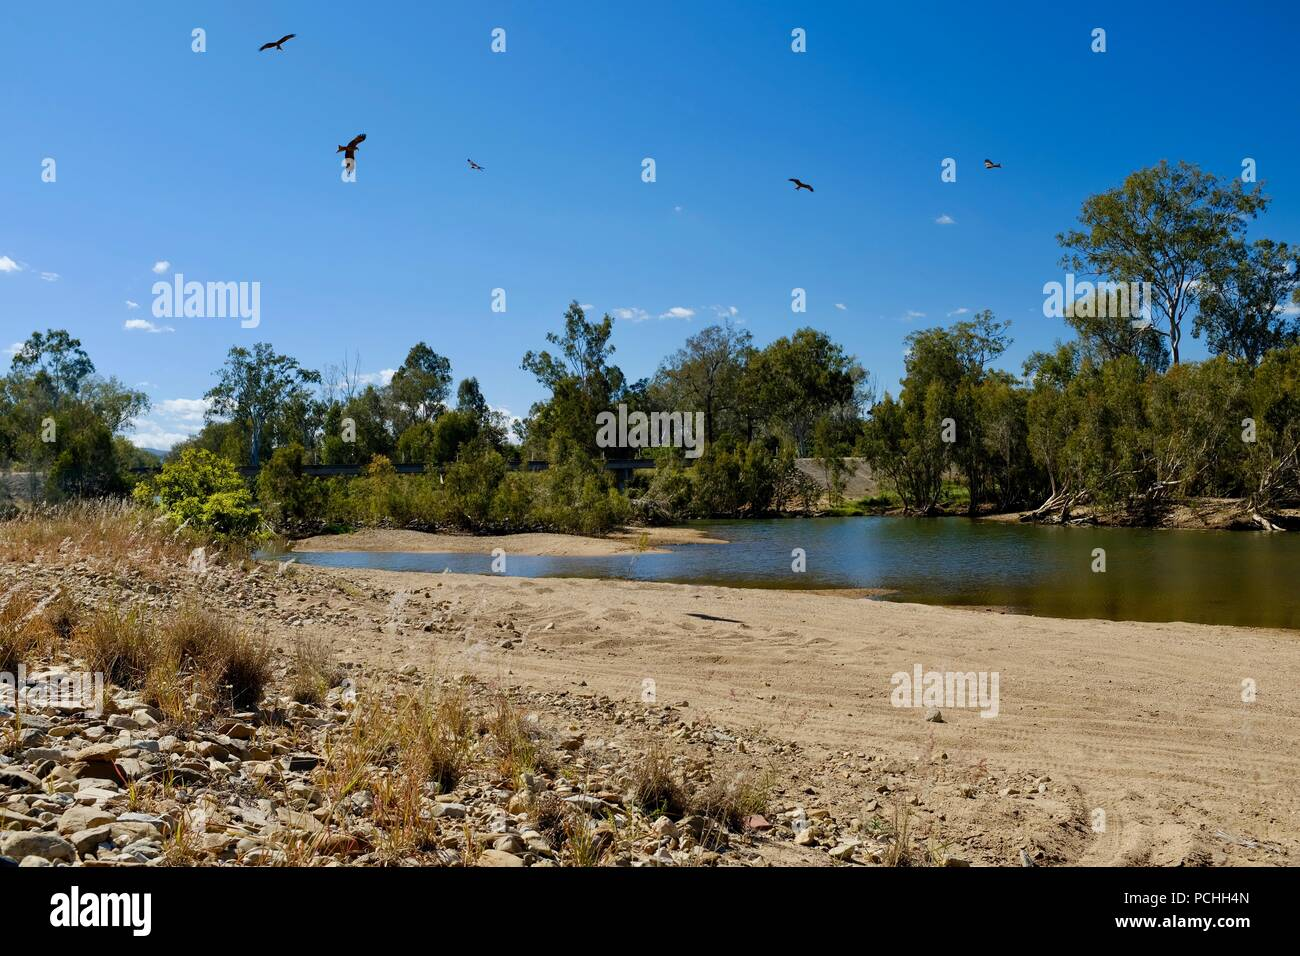 Birds Of Prey Circling In The Sky With The Sun And Trees Townsville Queensland Australia Stock Photo Alamy